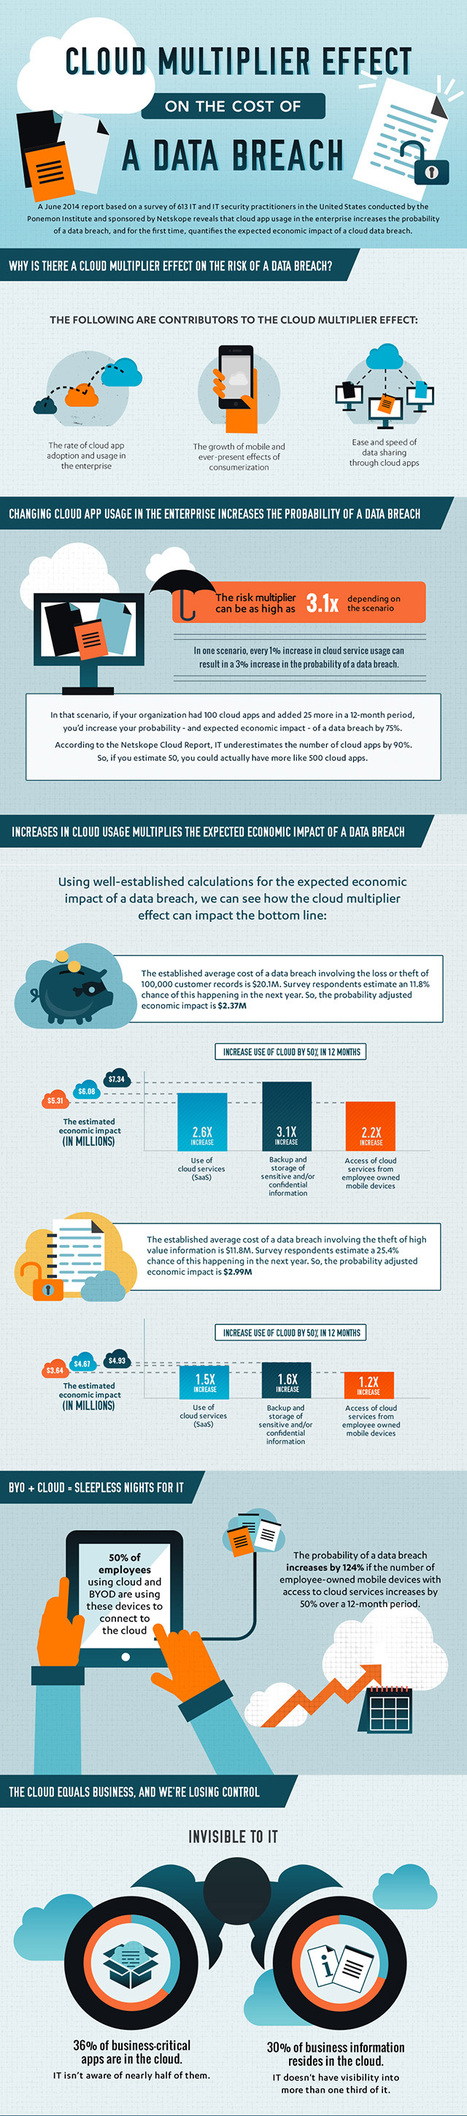 INFOGRAPHIC: The Cost Of A Data Breach | Cloud Central | Scoop.it